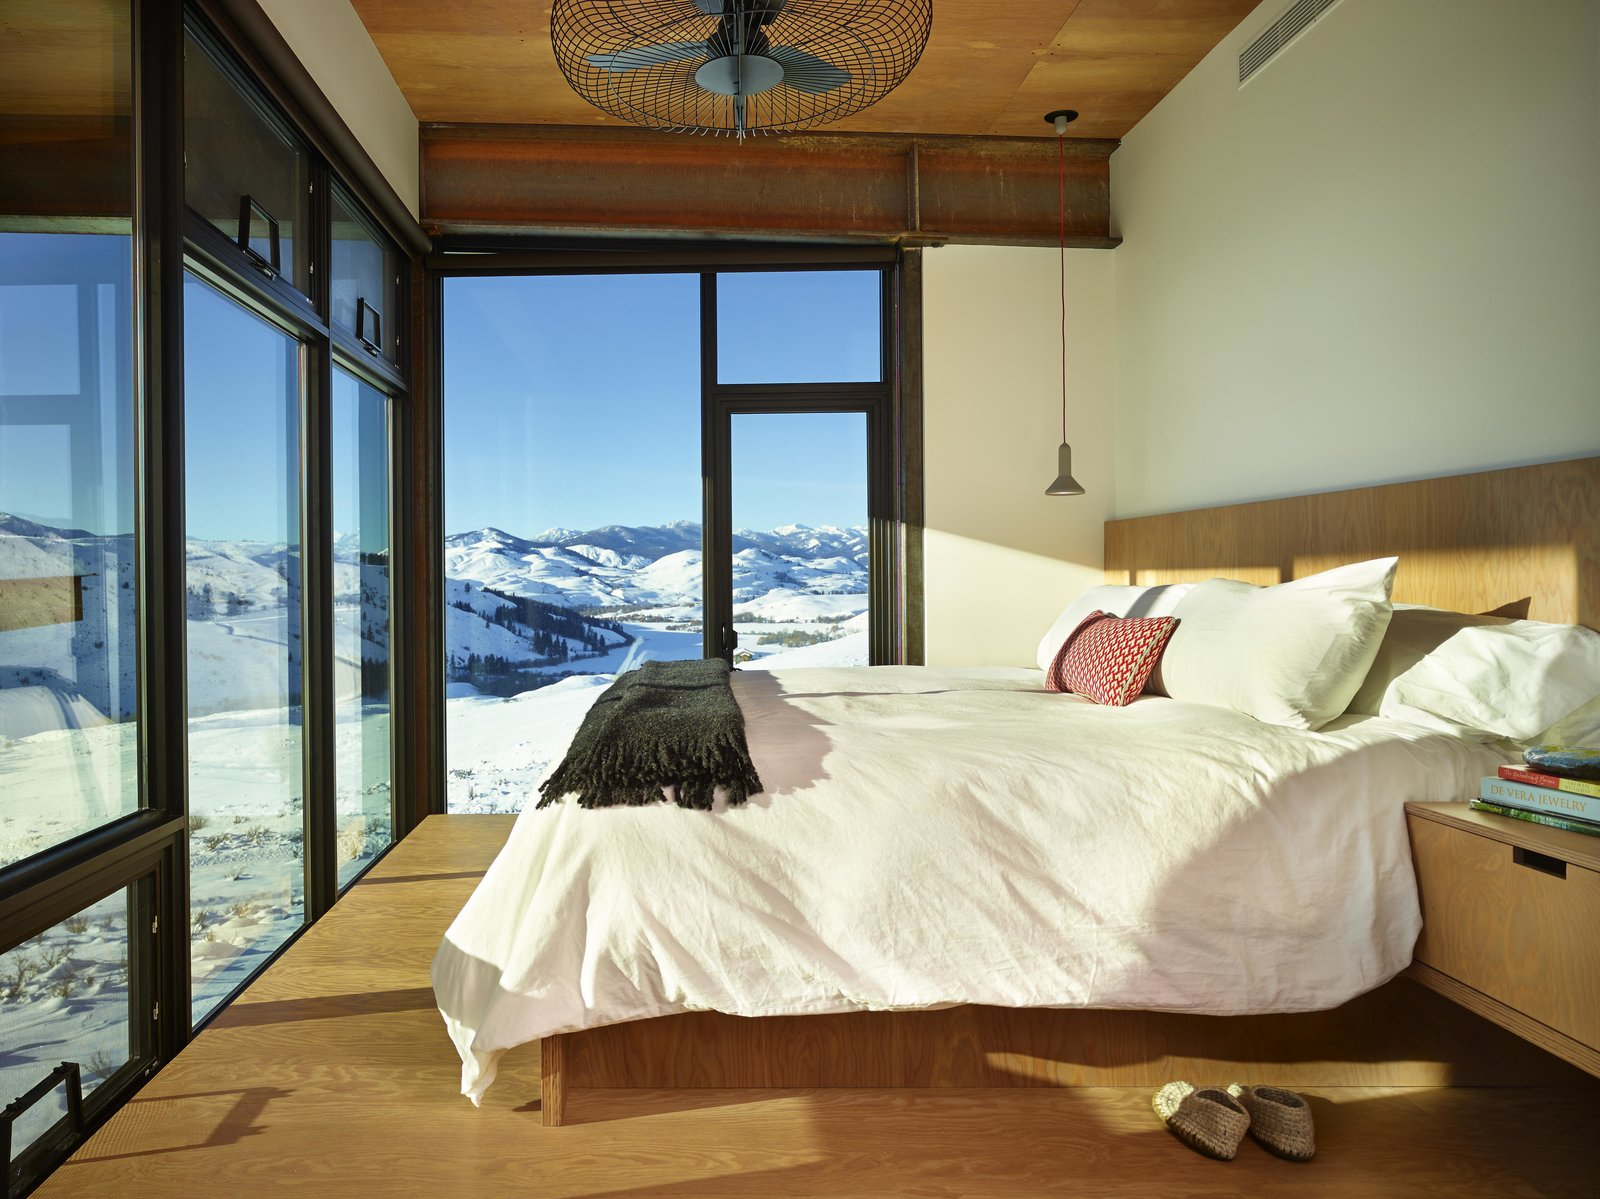 Bedroom, Medium Hardwood Floor, Pendant Lighting, and Bed The master bedroom, kids' bedrooms, and den are ensconced in the  Photo 9 of 11 in A Steel-and-Glass Compound Is One Family's Launchpad For Adventure